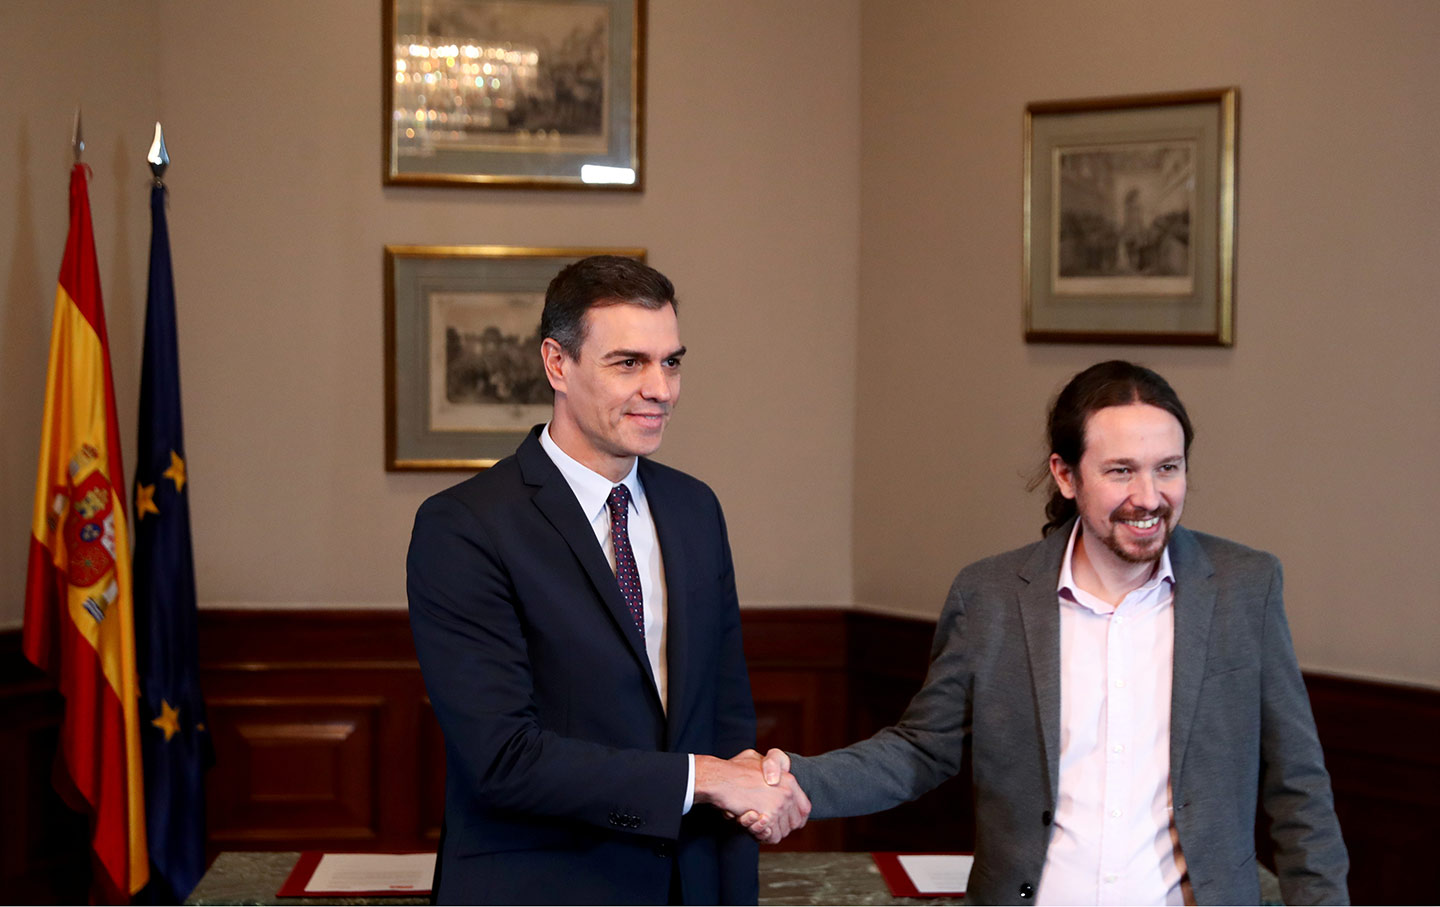 Spain Sanchez and Iglesias Unidas Podemos